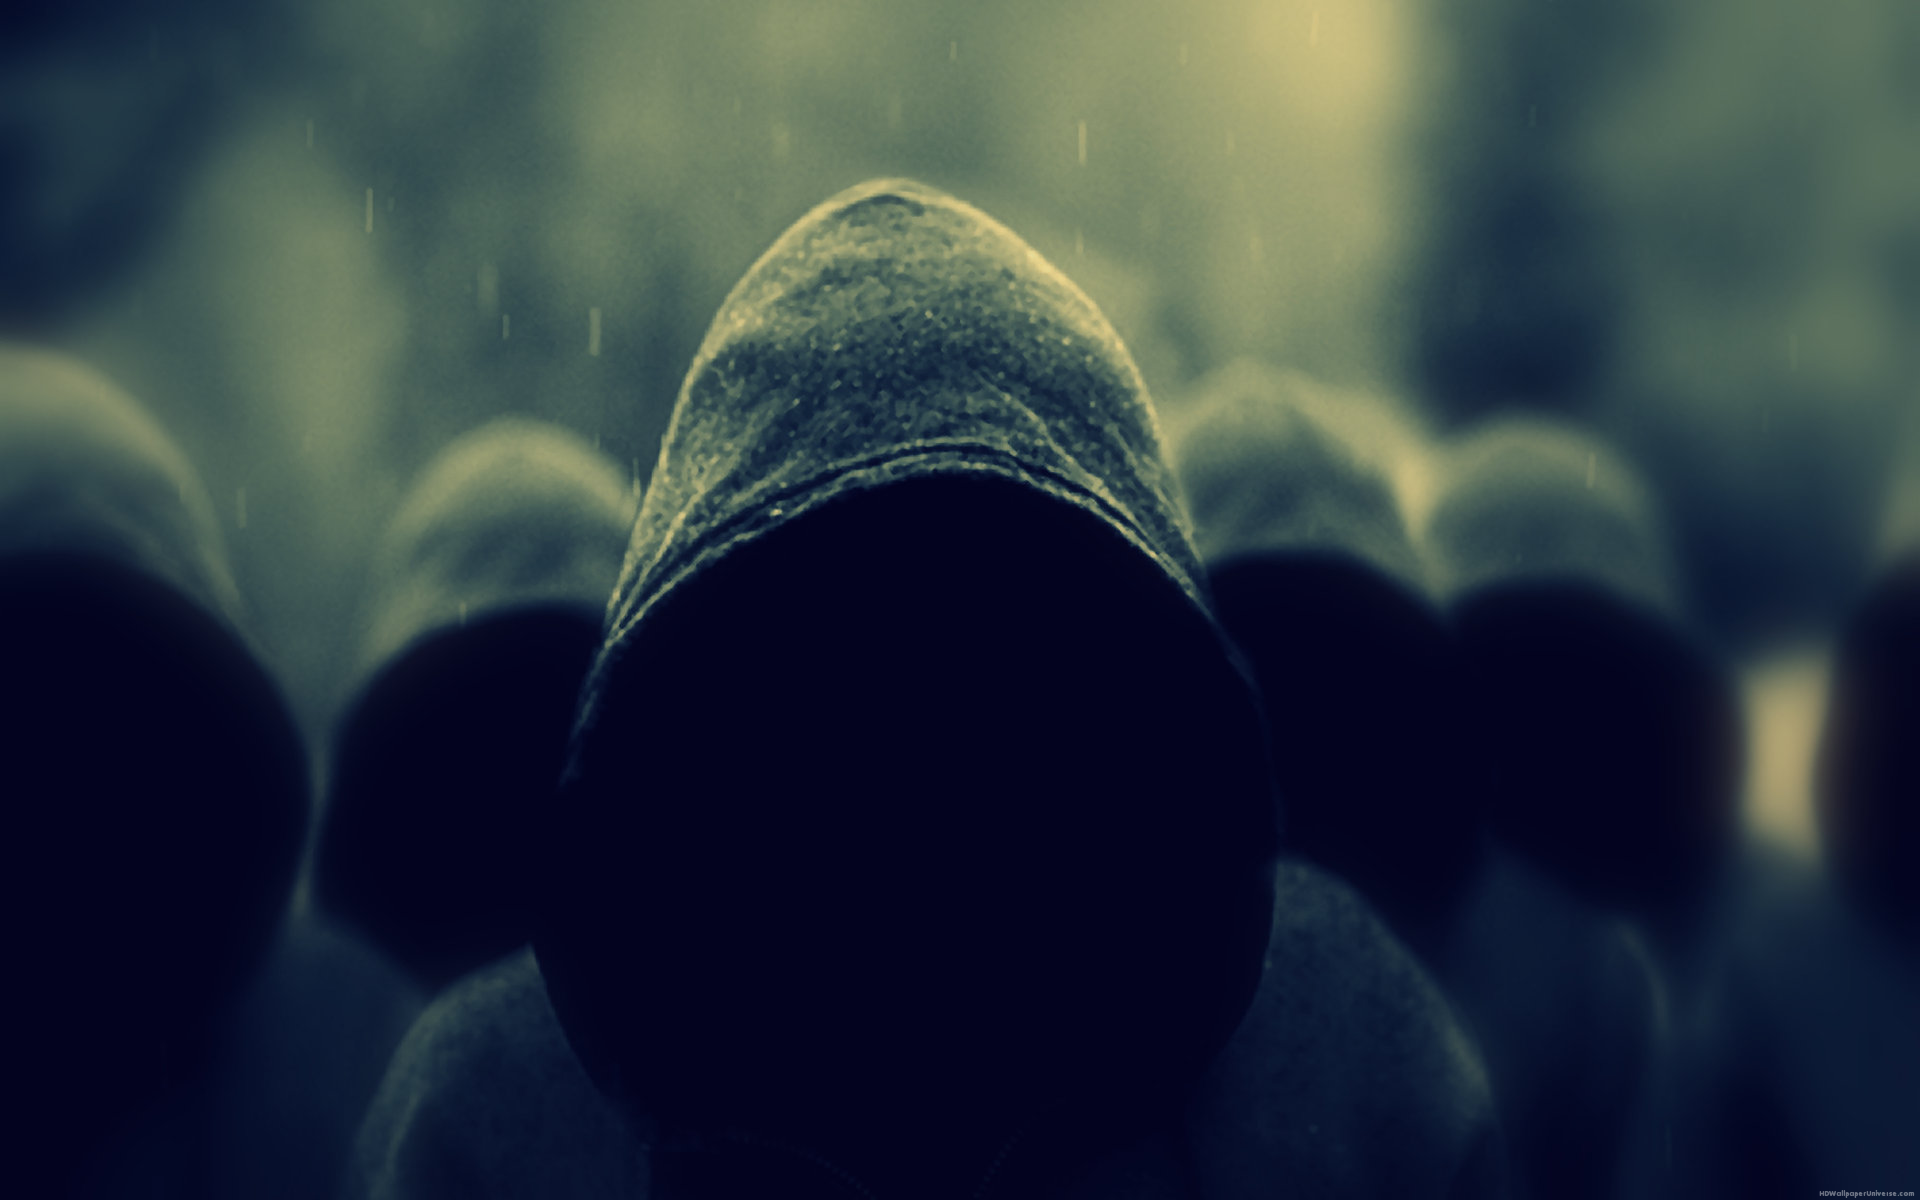 Dropgangs and Dead Drops: Report Highlights Evolving Darknet Market Opsec